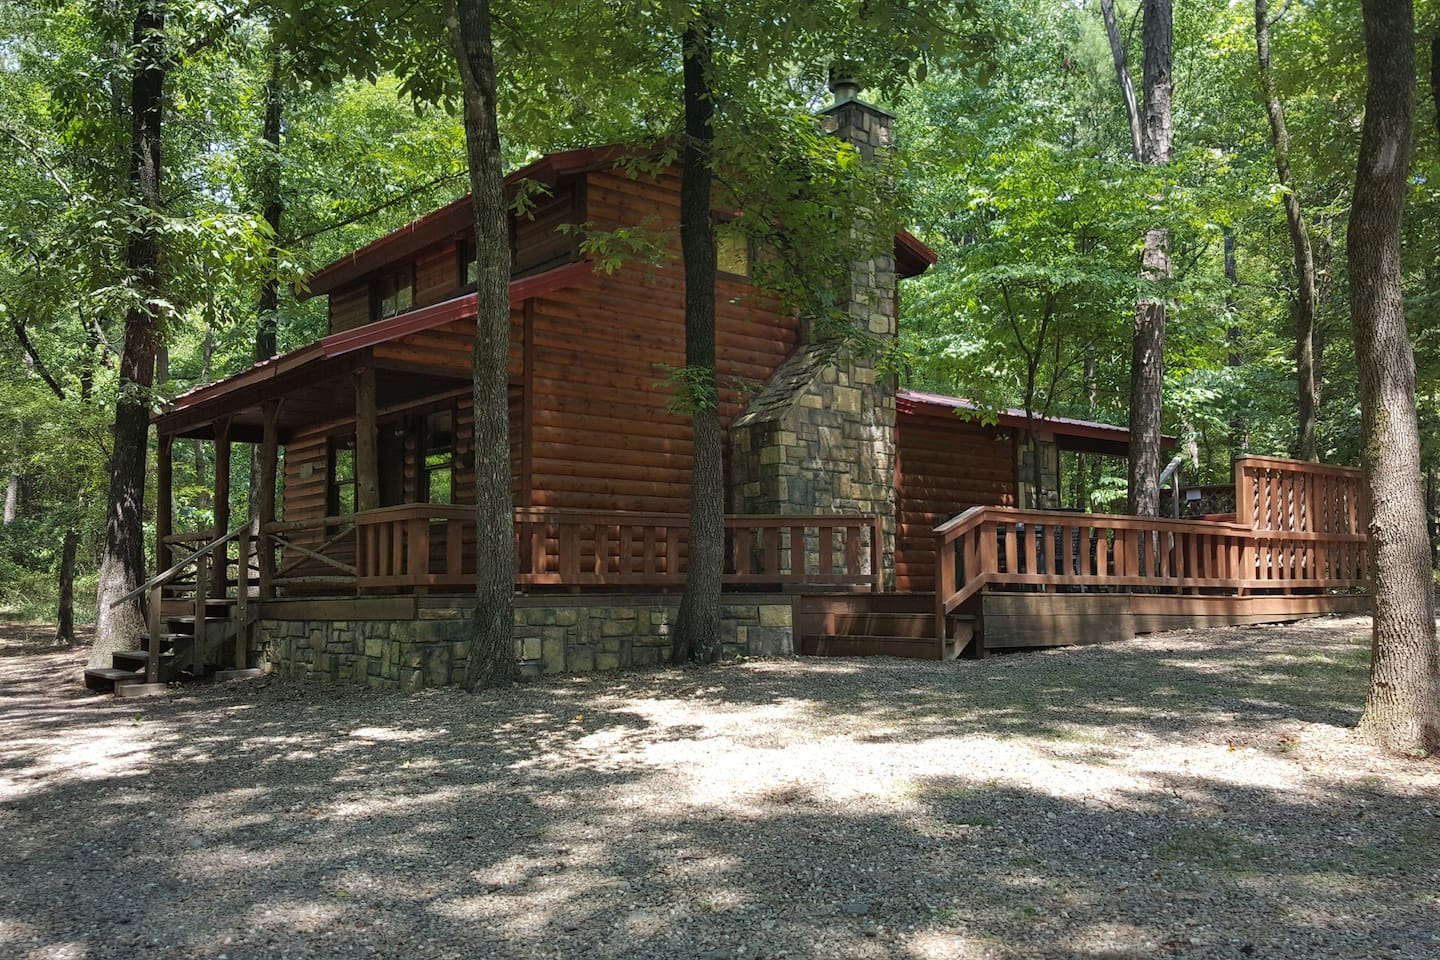 near bend luxury bow lodge beautiful twin cabins for beavers properties united built ok bears park homes state story broken country custom is sale hochatown cabin a